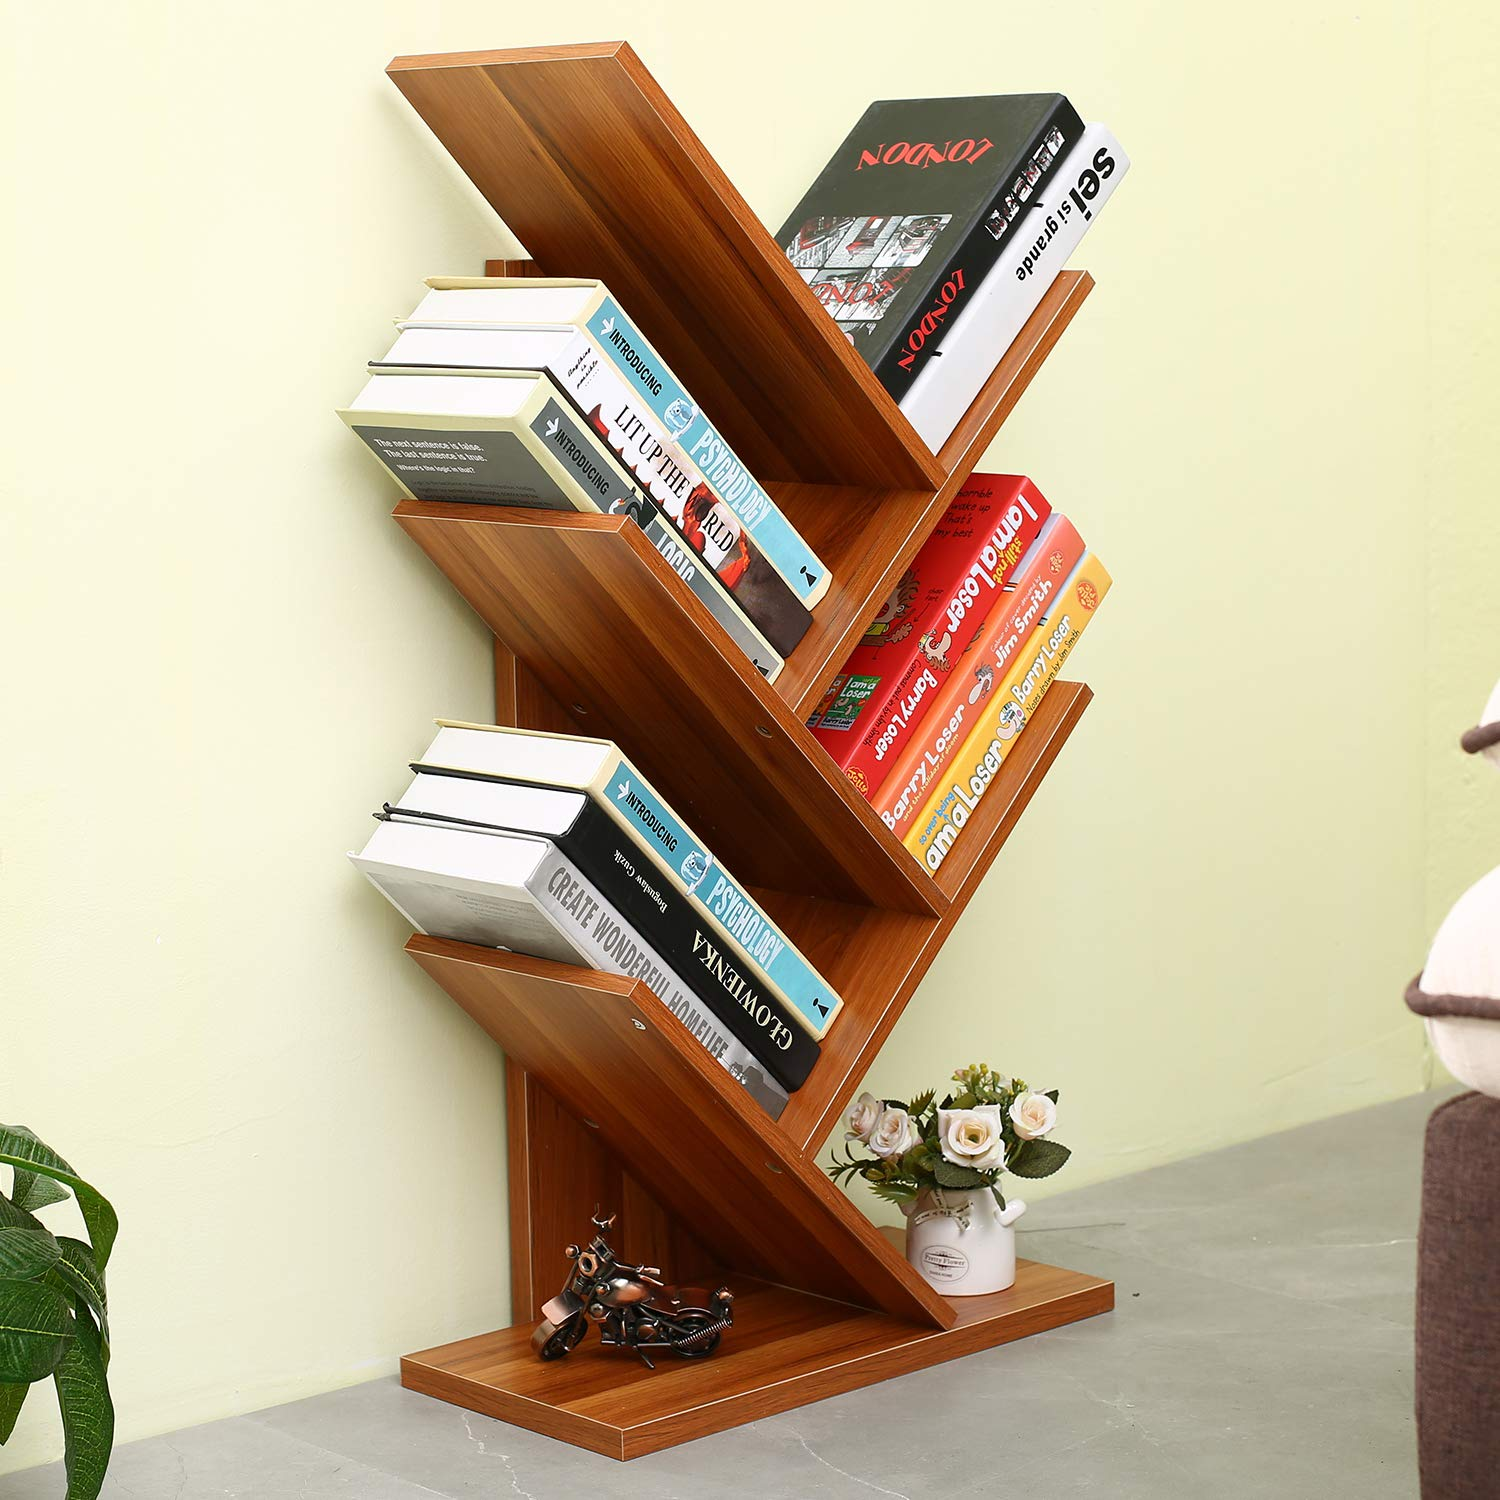 Homebi 5-Shelf Bookshelf Tree Bookcase Wood Bookshelves Storage Rack MDF Tree Shelf Display Organizer for Books,Magazines,CDs and Photo Album Holds Up to 5kgs Per Shelf,15.75 Wx7.87 Dx30.71 H